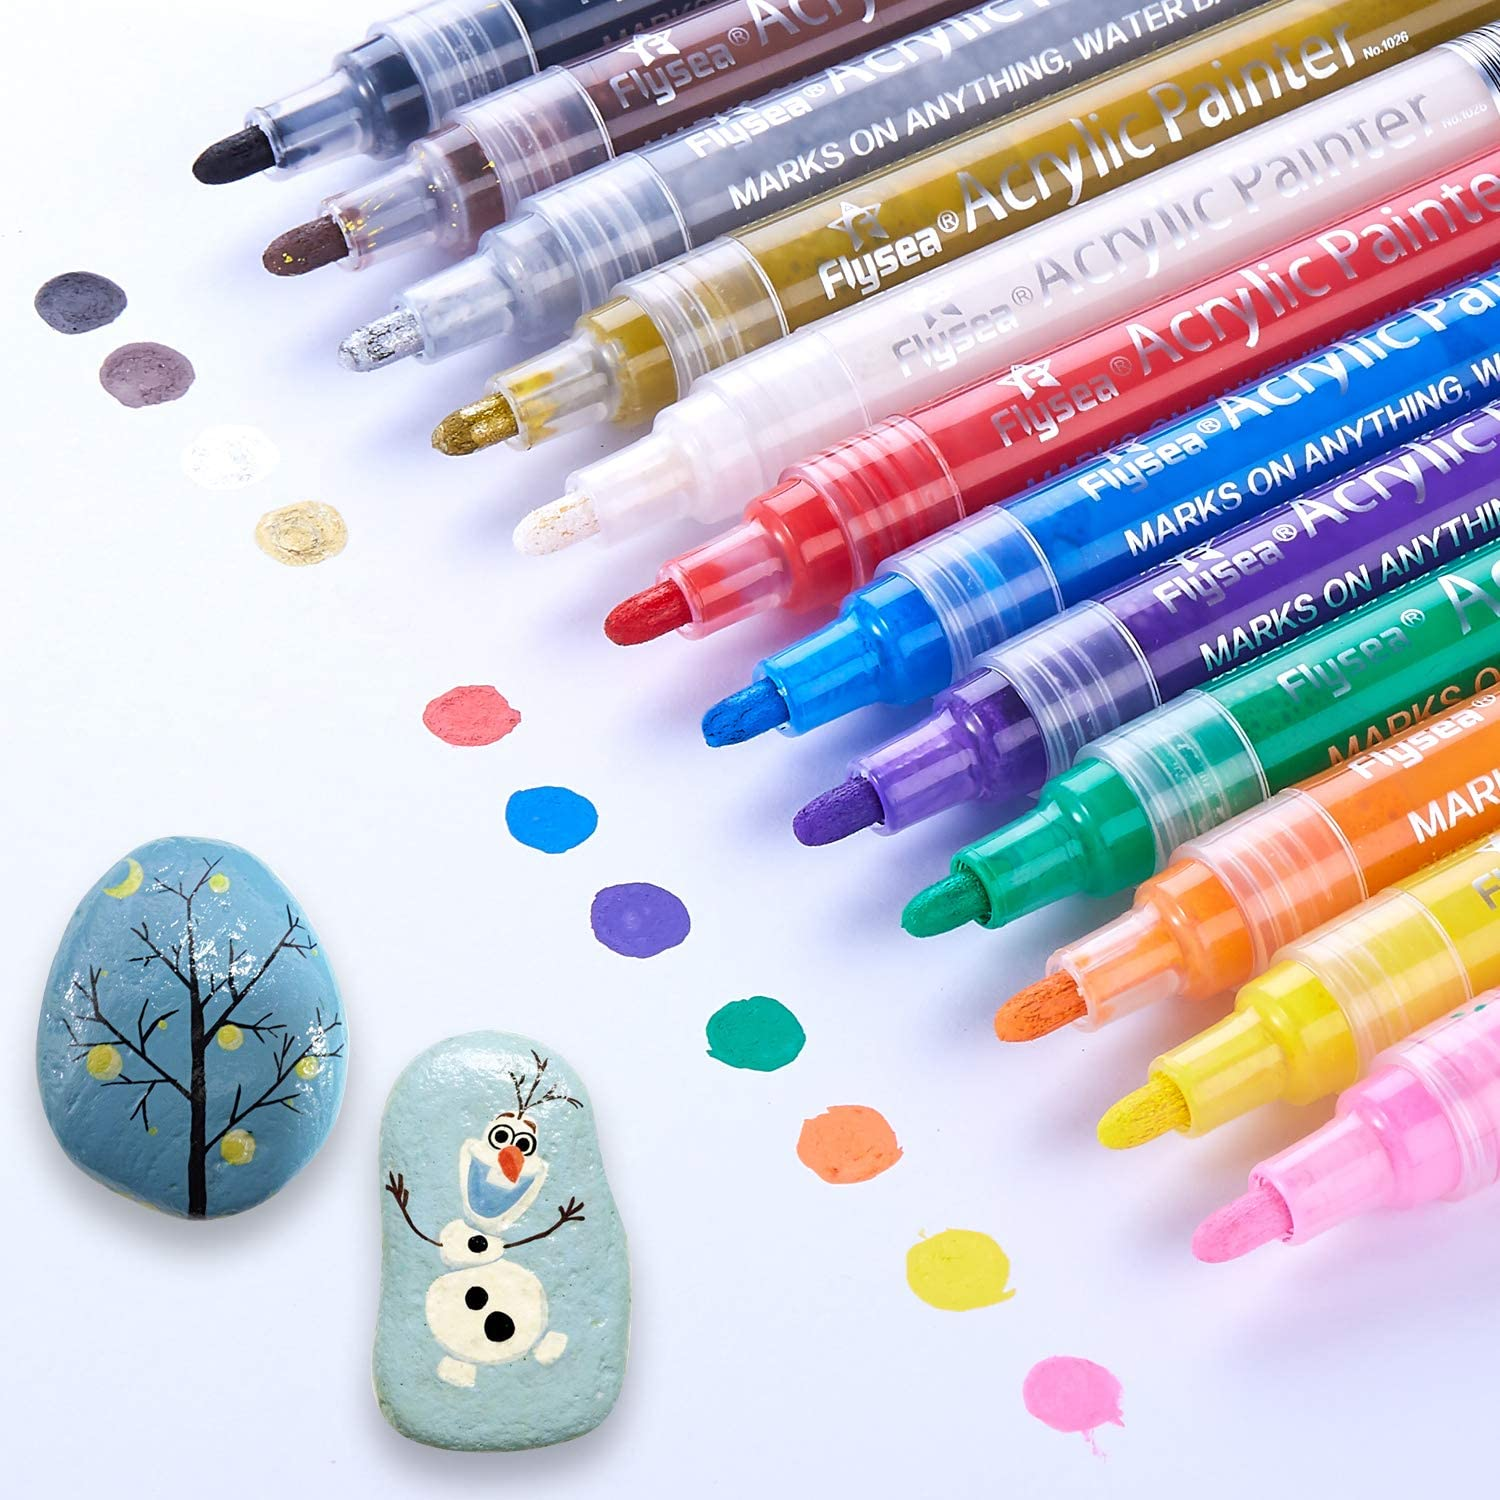 Acrylic Paint Marker Pens, Waterproof Paint Pens for Rocks Painting, Ceramic, Glass, Wood, Fabric, Canvas, Mugs, DIY Craft Making Supplies, Scrapbooking Craft, Card Making (12colors)